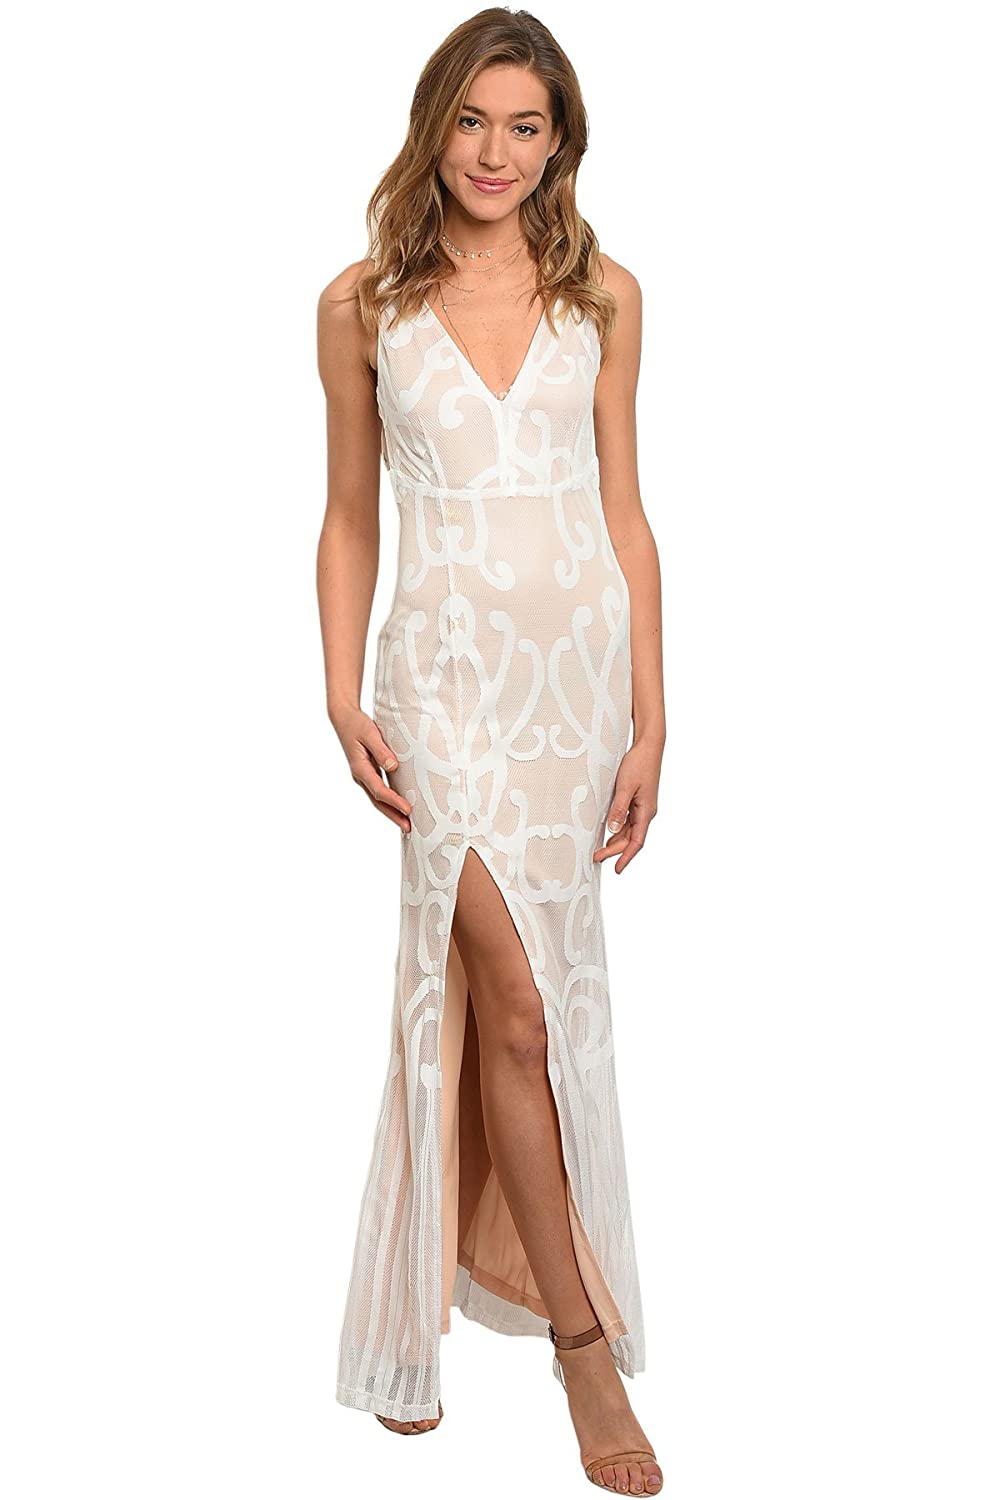 7addc9ac6d Amazon.com  Gorgeous Elegant Ivory White Lace Nude Cocktail Formal Gown  Open Back Front Thigh Slit  Clothing